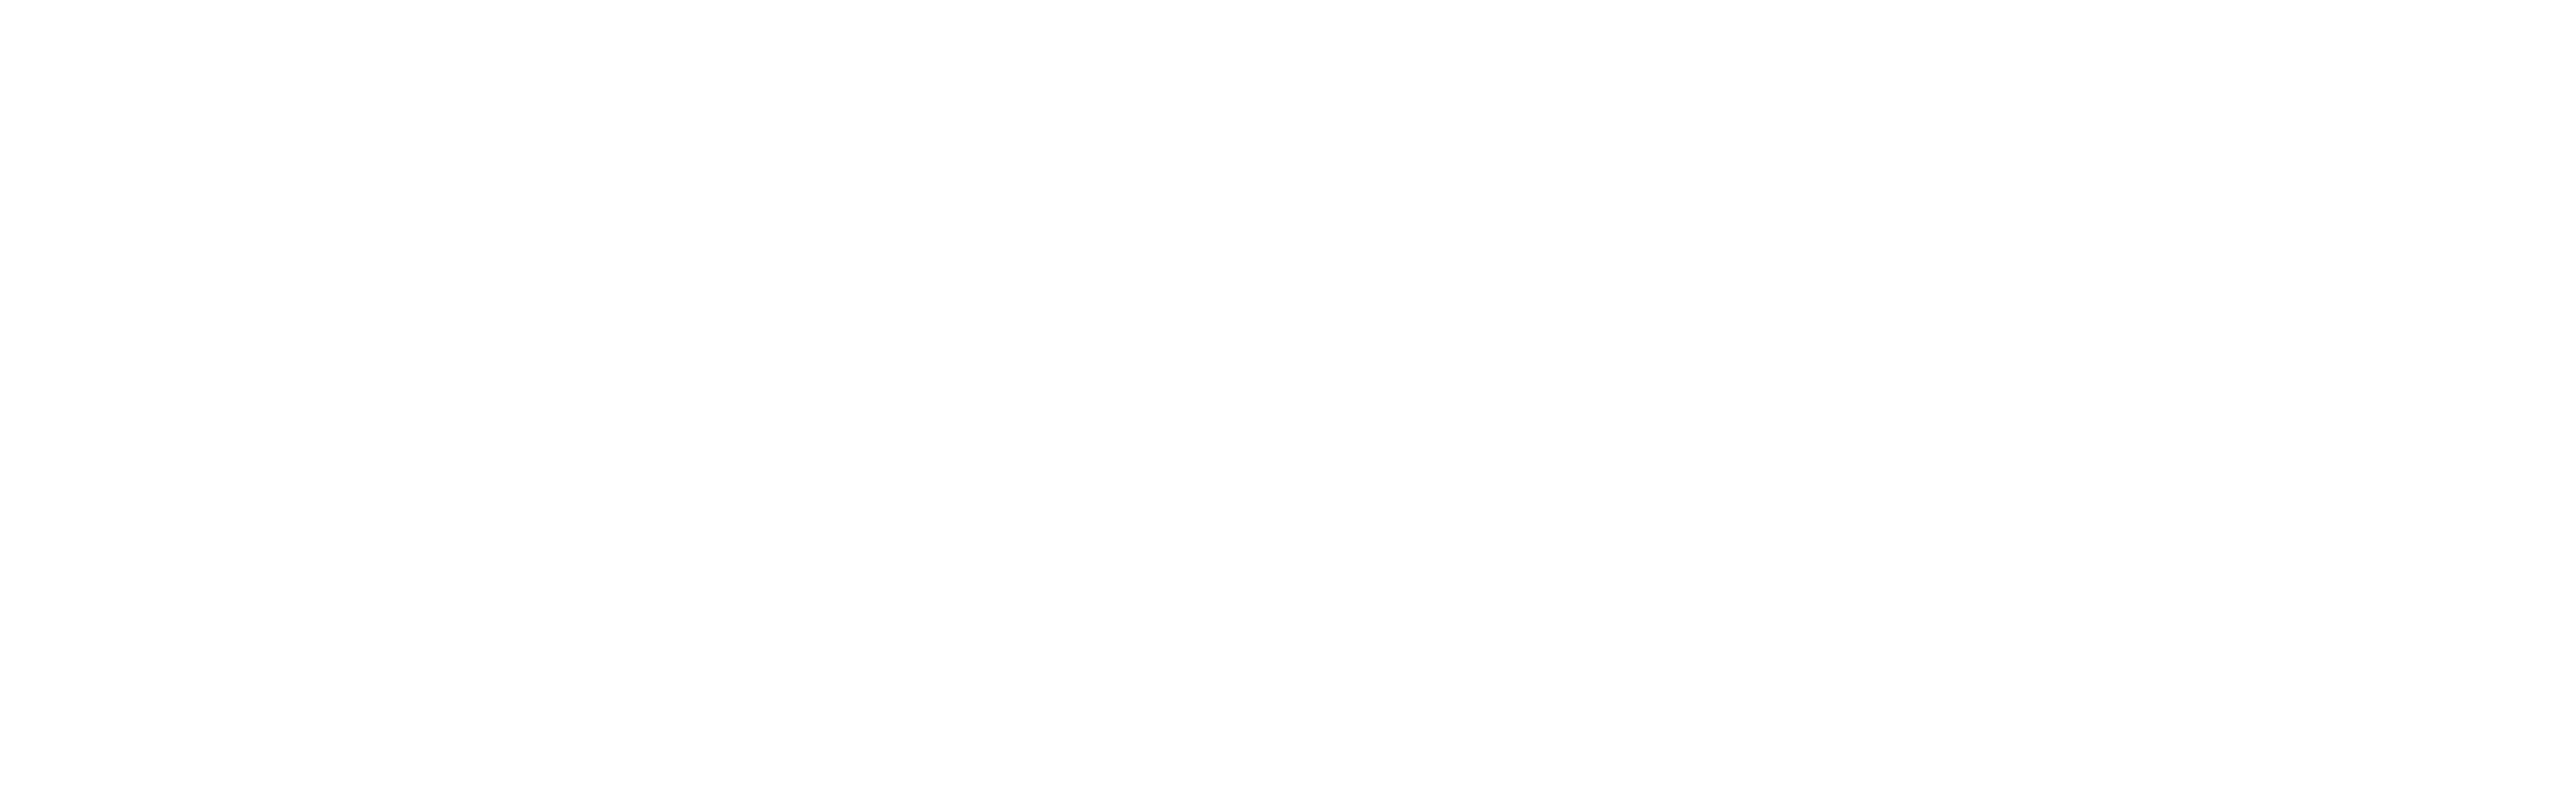 Silicon Valley Partners